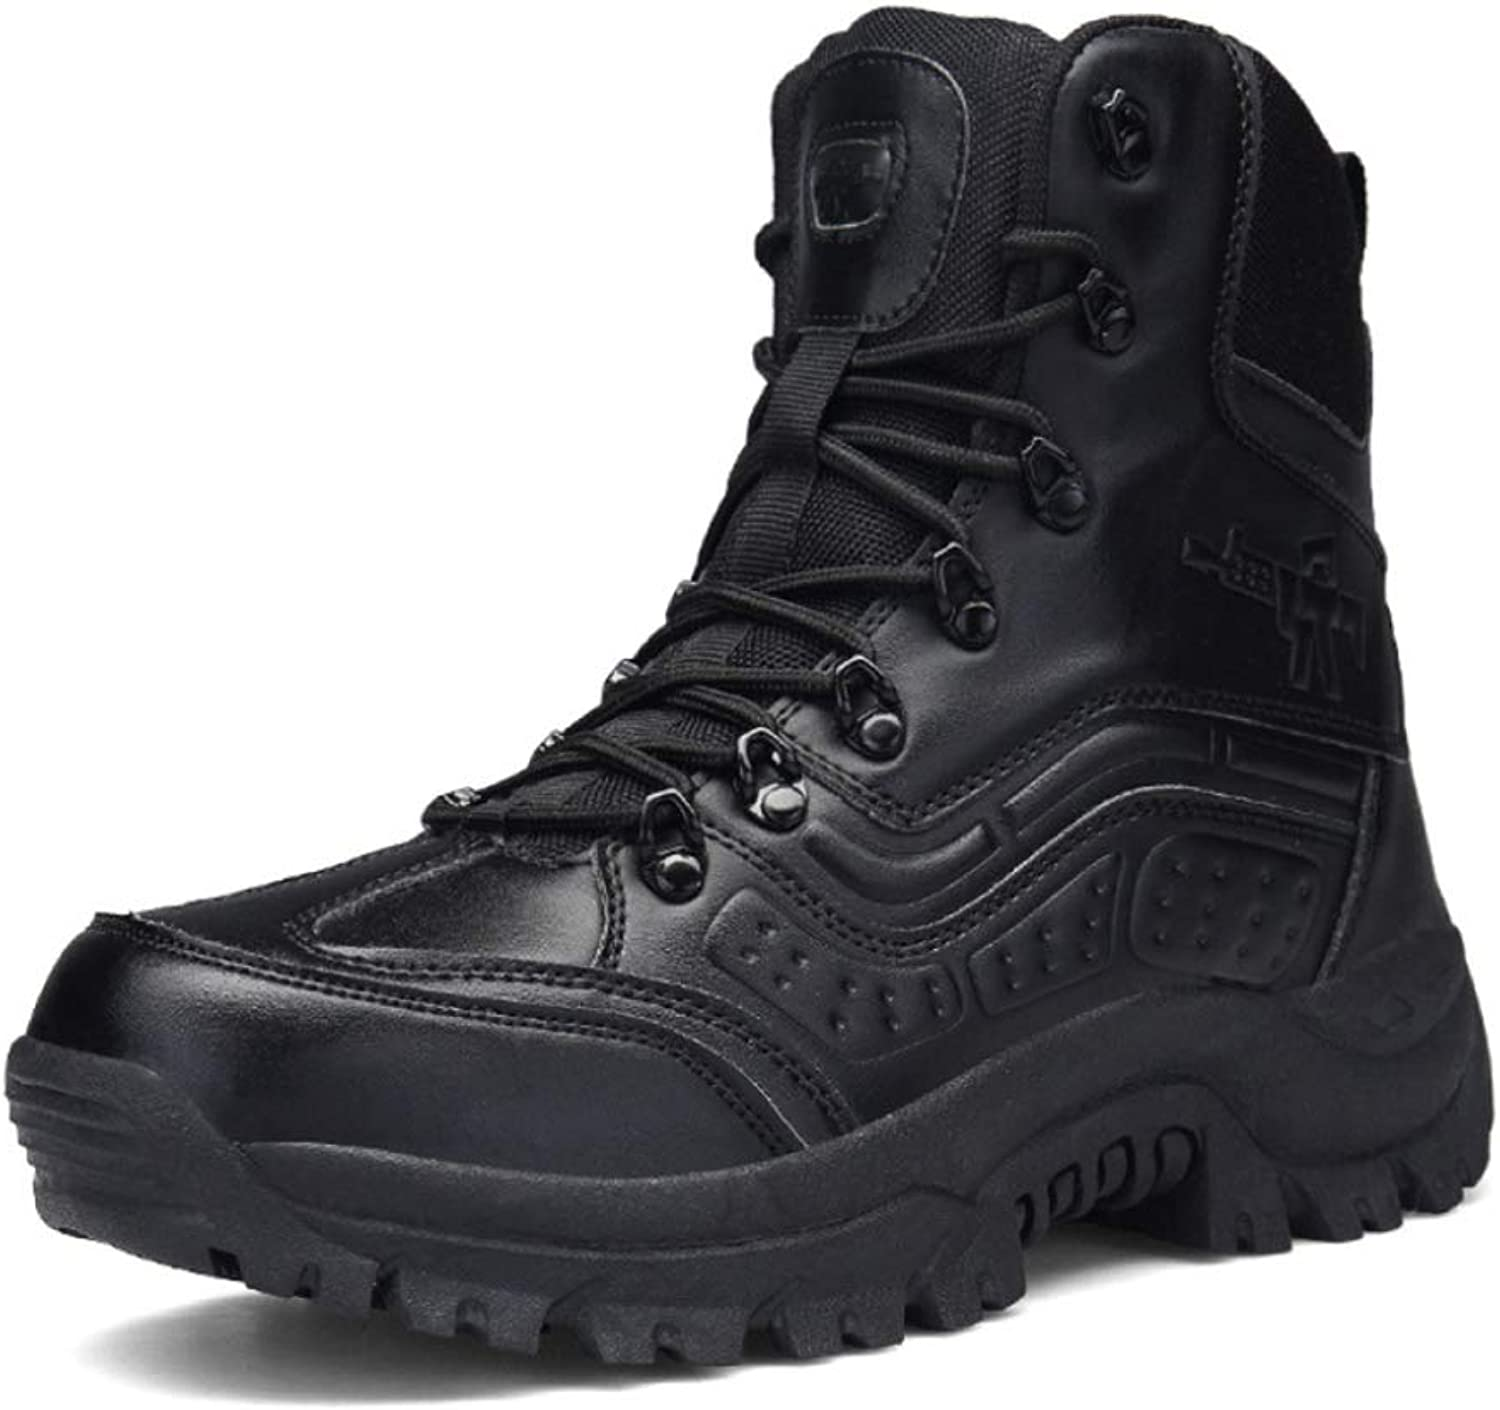 Men'S Army Boots Large Size Outdoor Snow Boots Non Slip Warm Warrior Boots Hiking Travel Riding Boots Army Boots